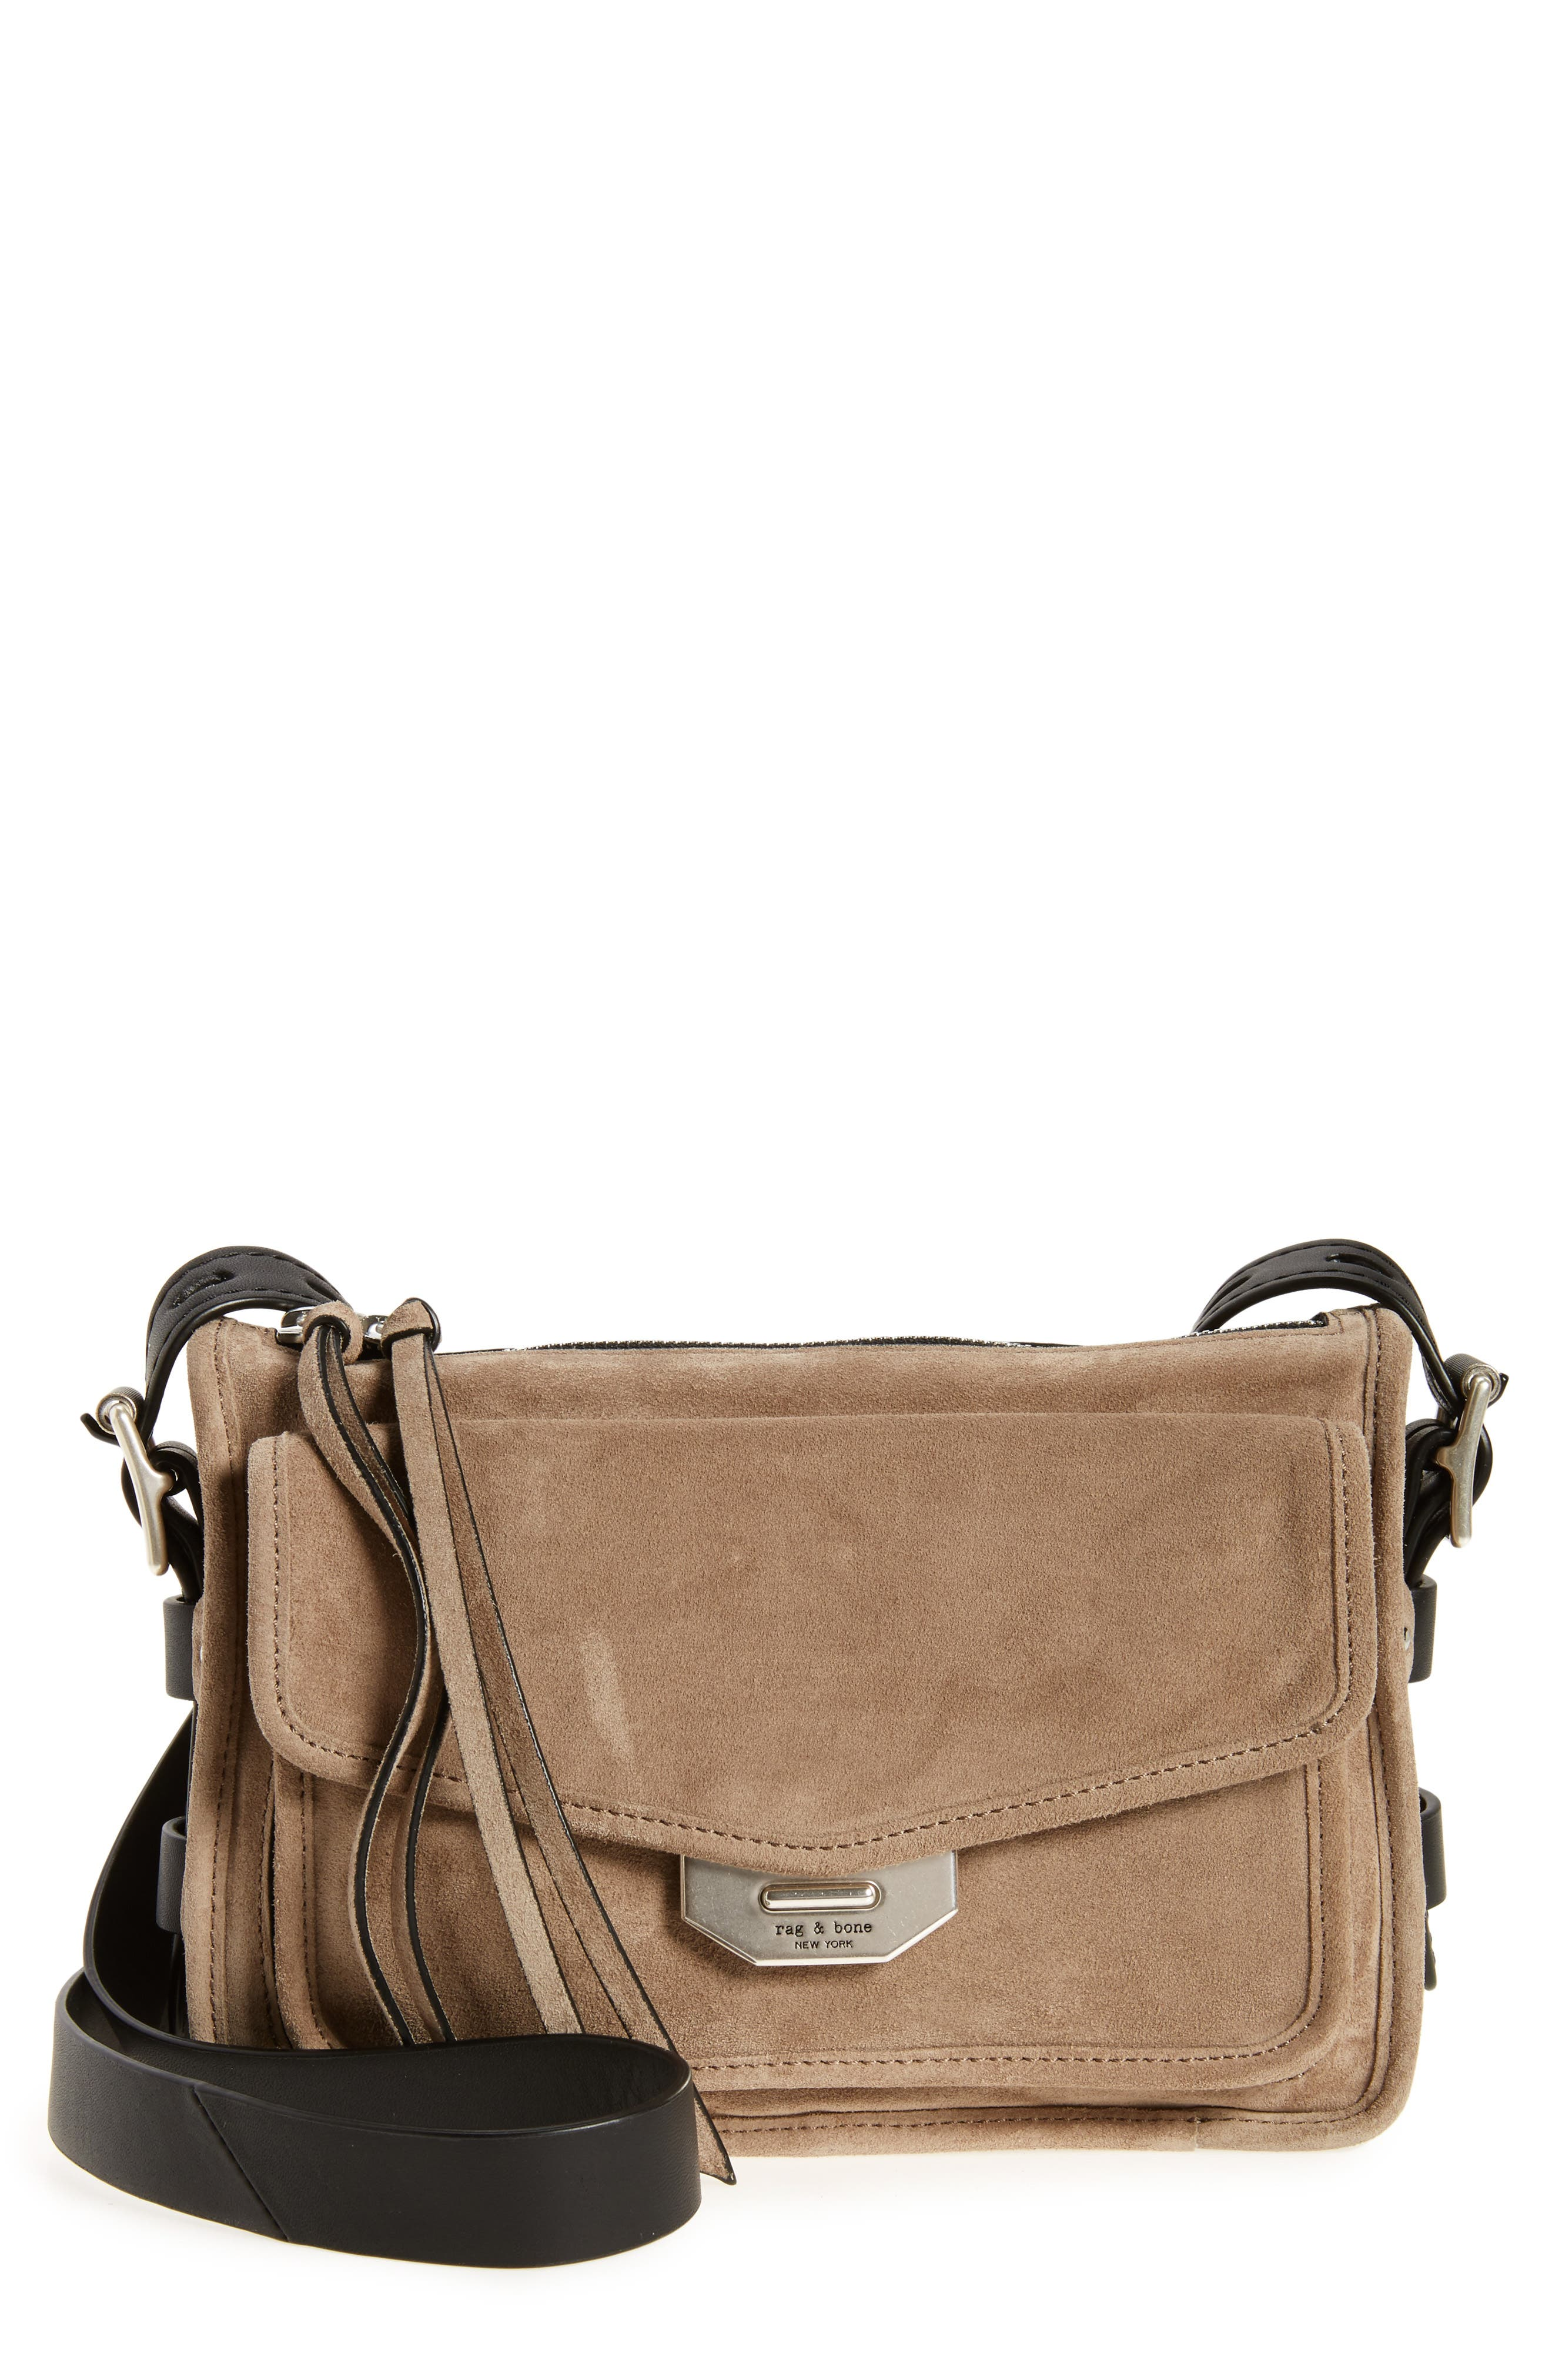 rag & bone Small Bomber Leather Crossbody Bag